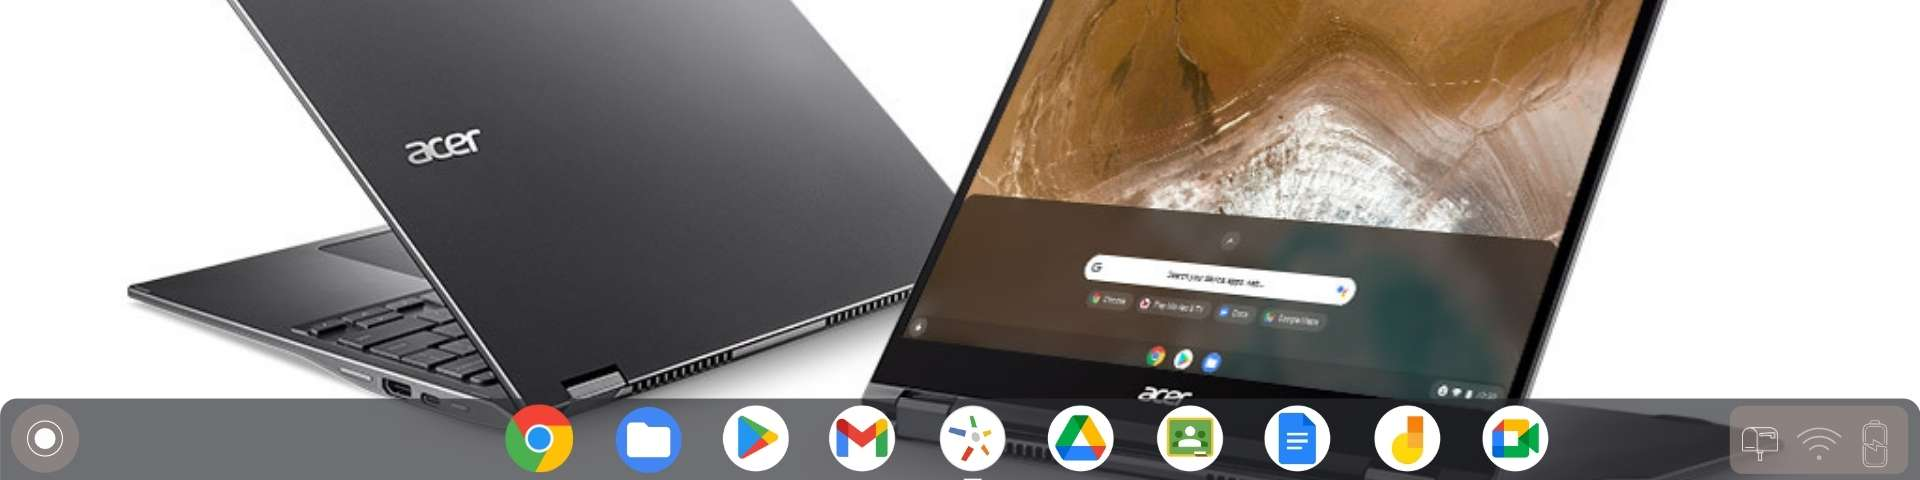 Concours #Chromebook10